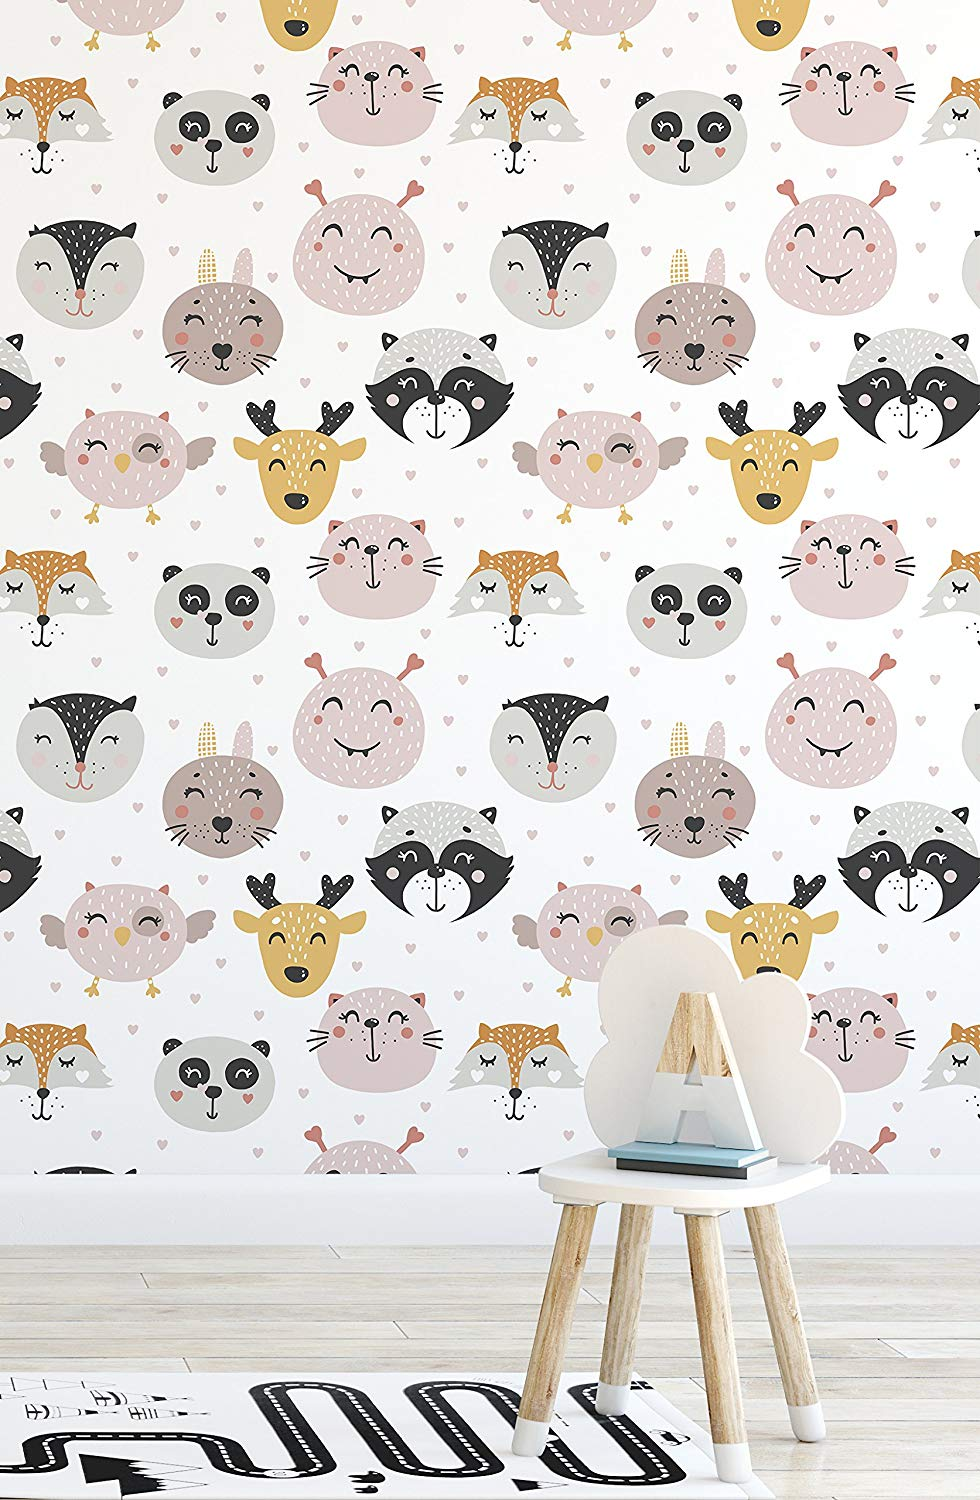 Get Quotations  C2 B7 Cute Animal Removable Wallpaper For Kids Room Playroom Nursery Self Adhesive Colorful Wall